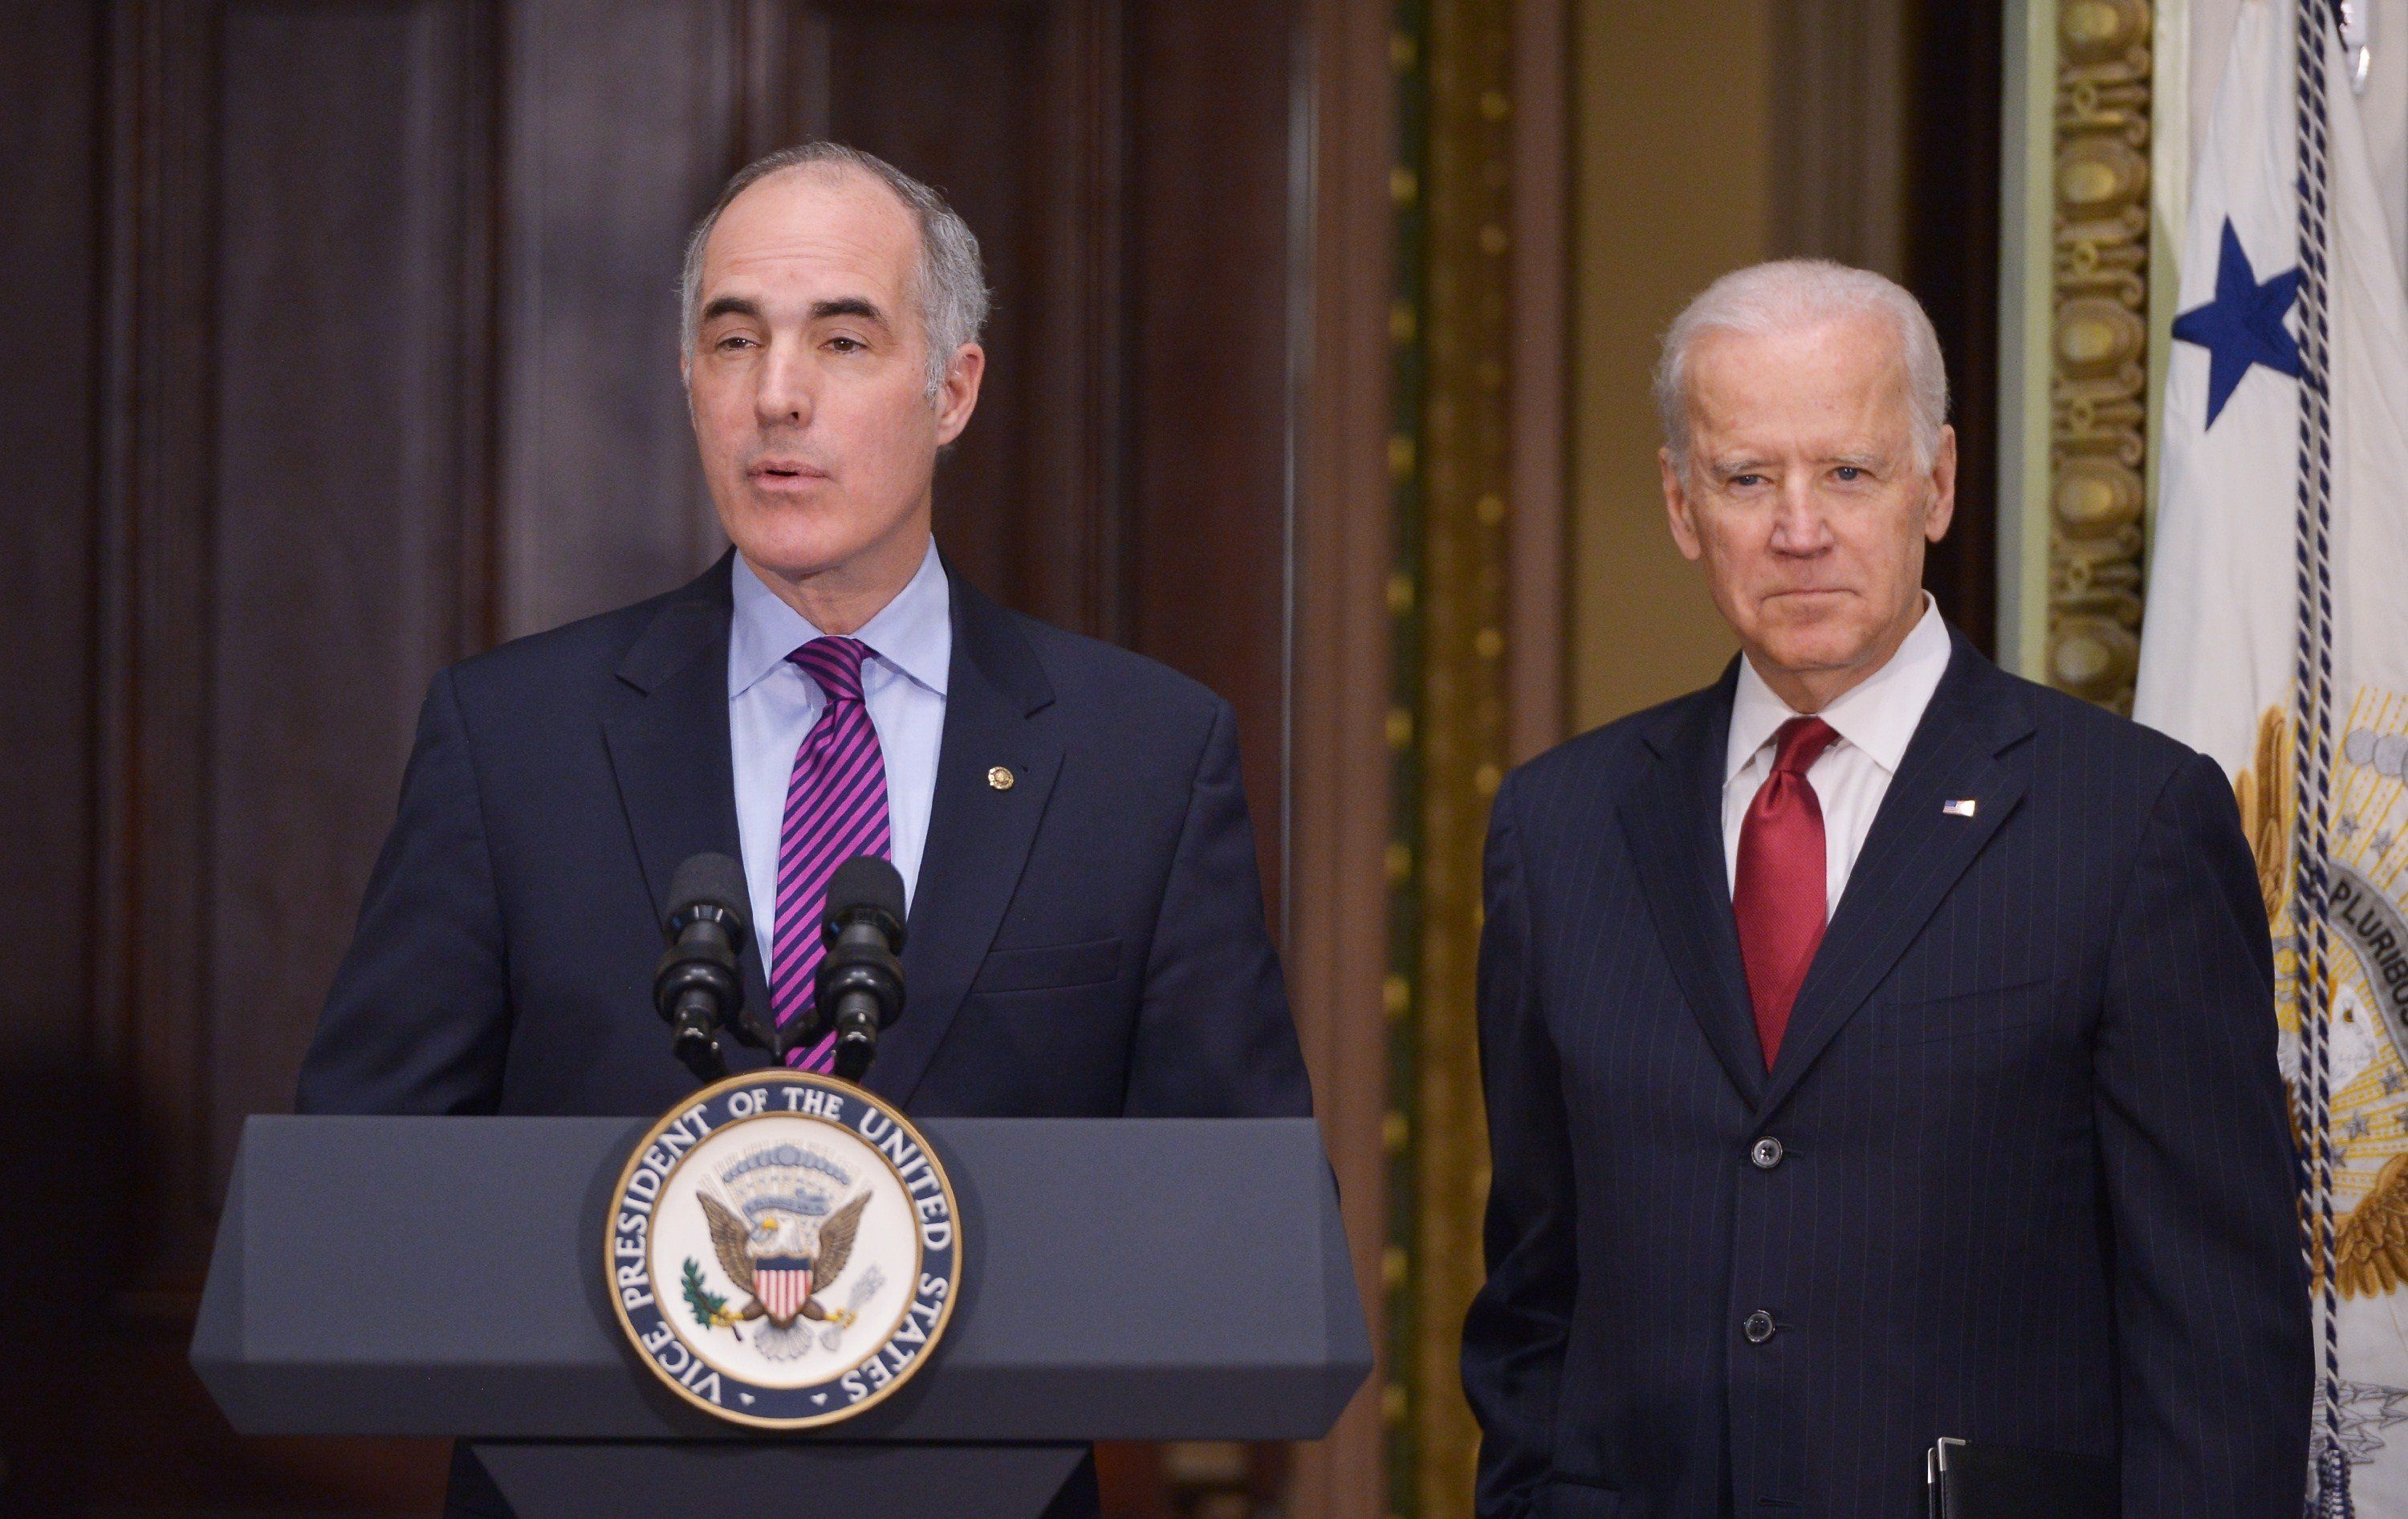 Senator Bob Casey, D-PA, introduces US Vice President Joe Biden during an event with members of Congress to highlight the benefits of the ABLE (Achieving Better Life Expectancy) Act in the Eisenhower Executive Office Building, next to the White House on February 10, 2015 in Washington, DC. AFP P HOTO/MANDEL NGAN        (Photo credit should read MANDEL NGAN/AFP/Getty Images)